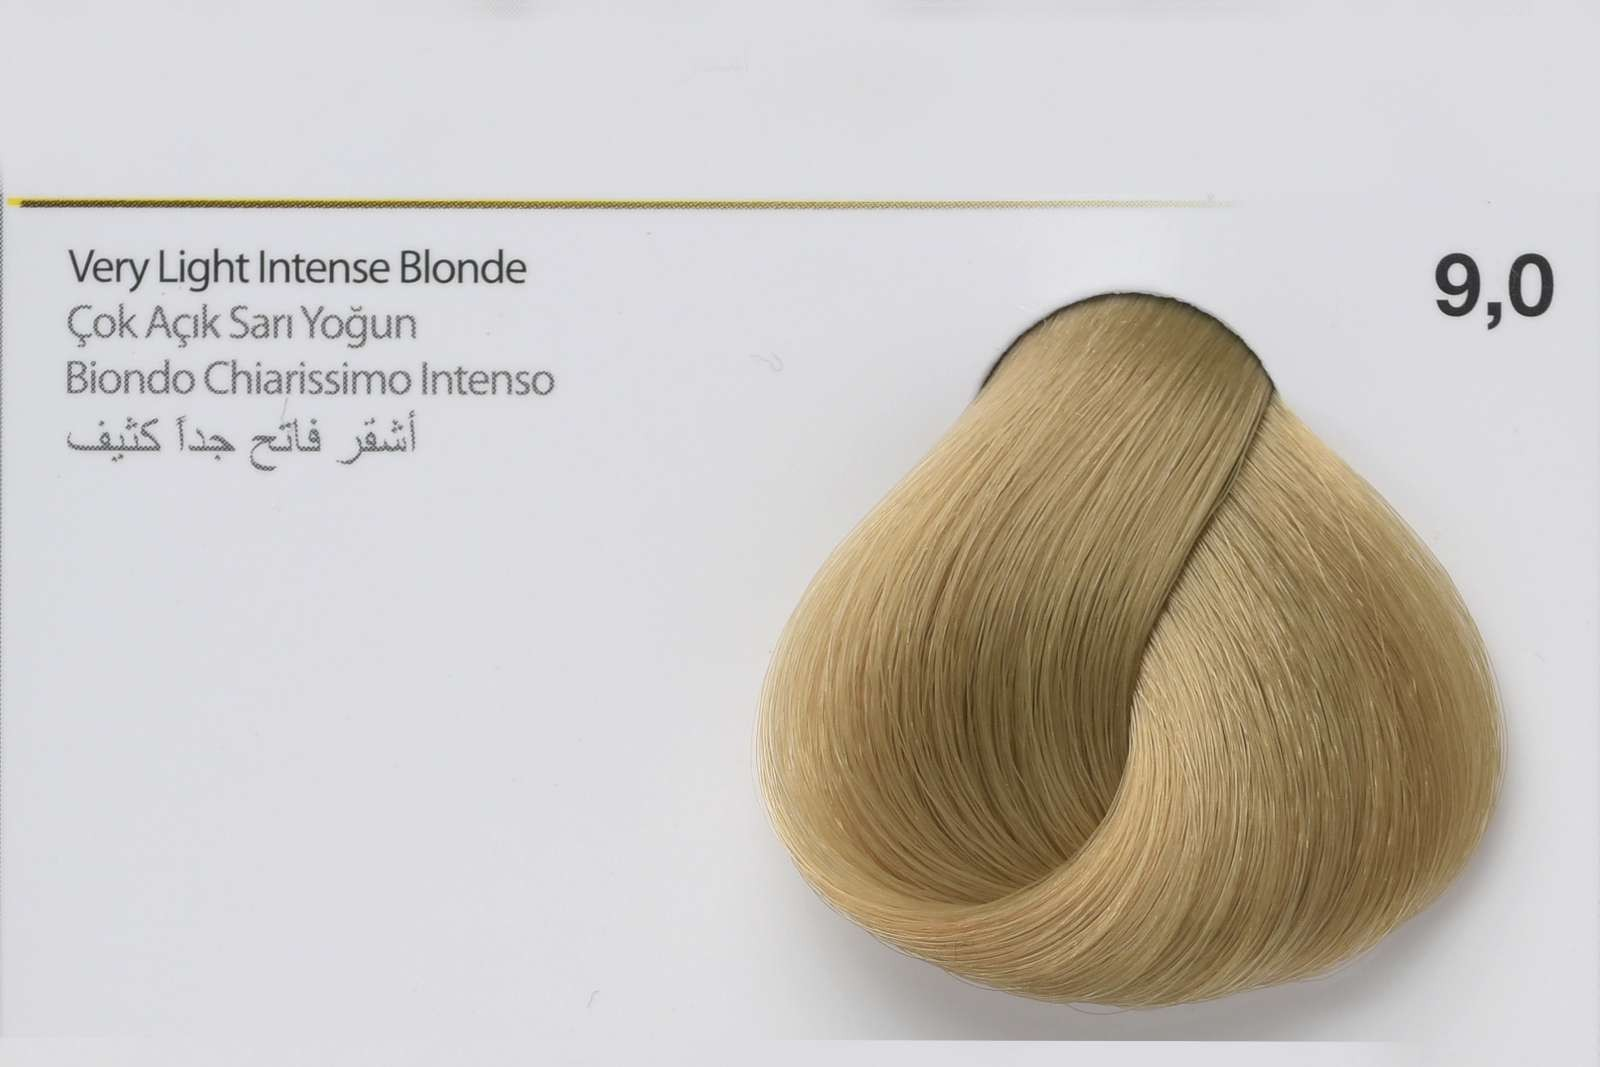 9,0 - Very Light Intense Blonde-swatch